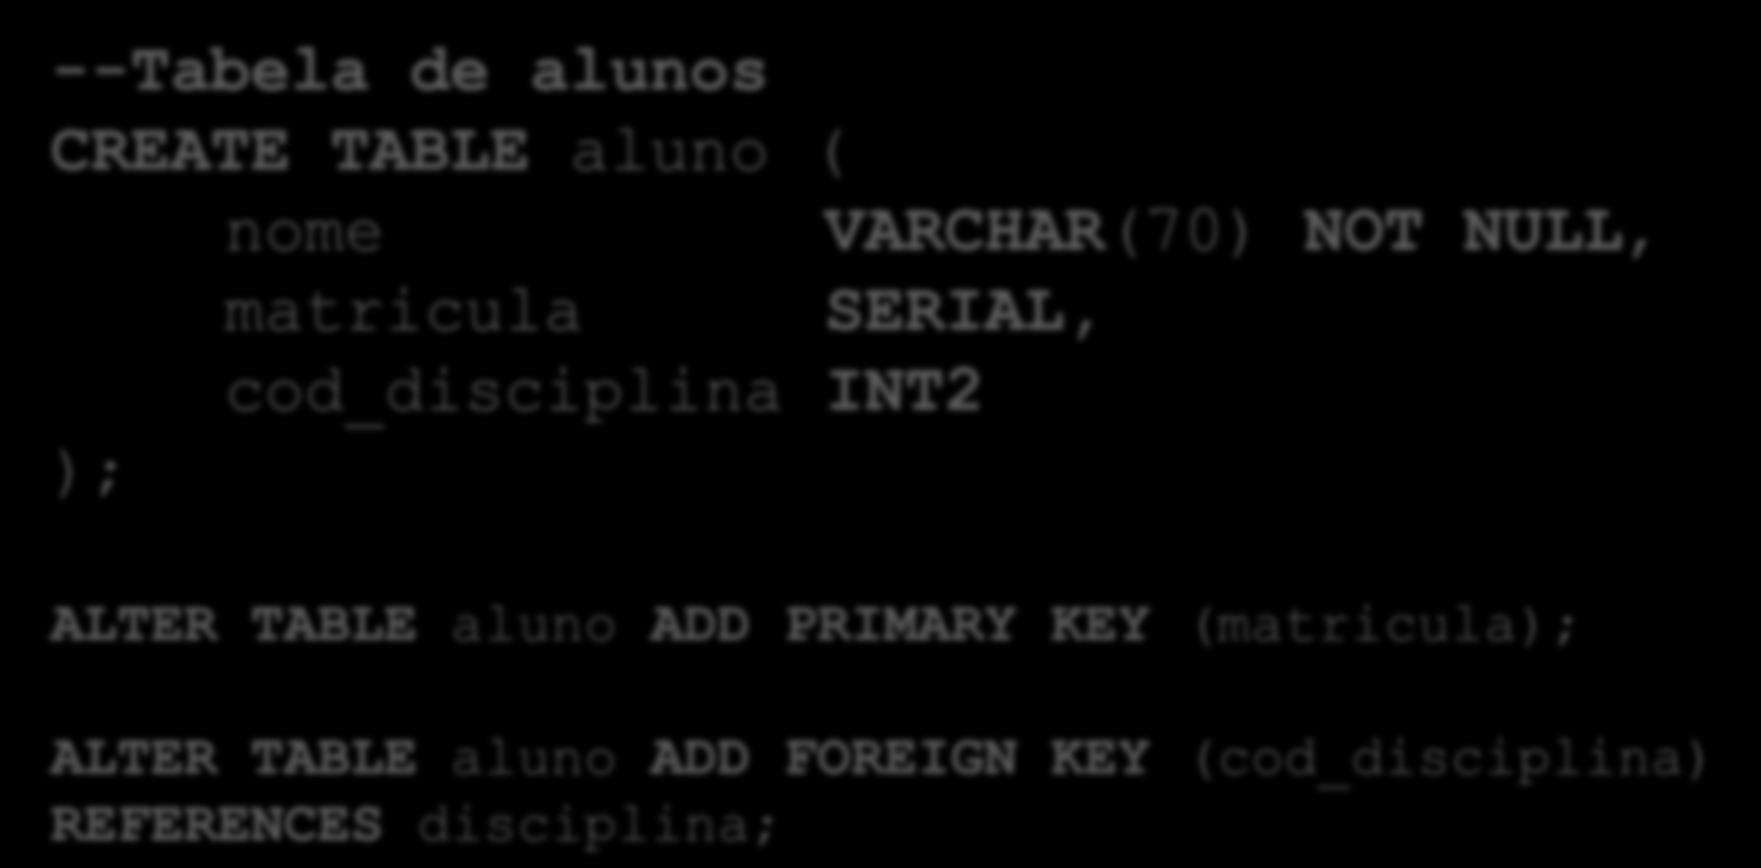 --Tabela de alunos CREATE TABLE aluno ( nome VARCHAR(70) NOT NULL, matricula SERIAL, cod_disciplina INT2 ); ALTER